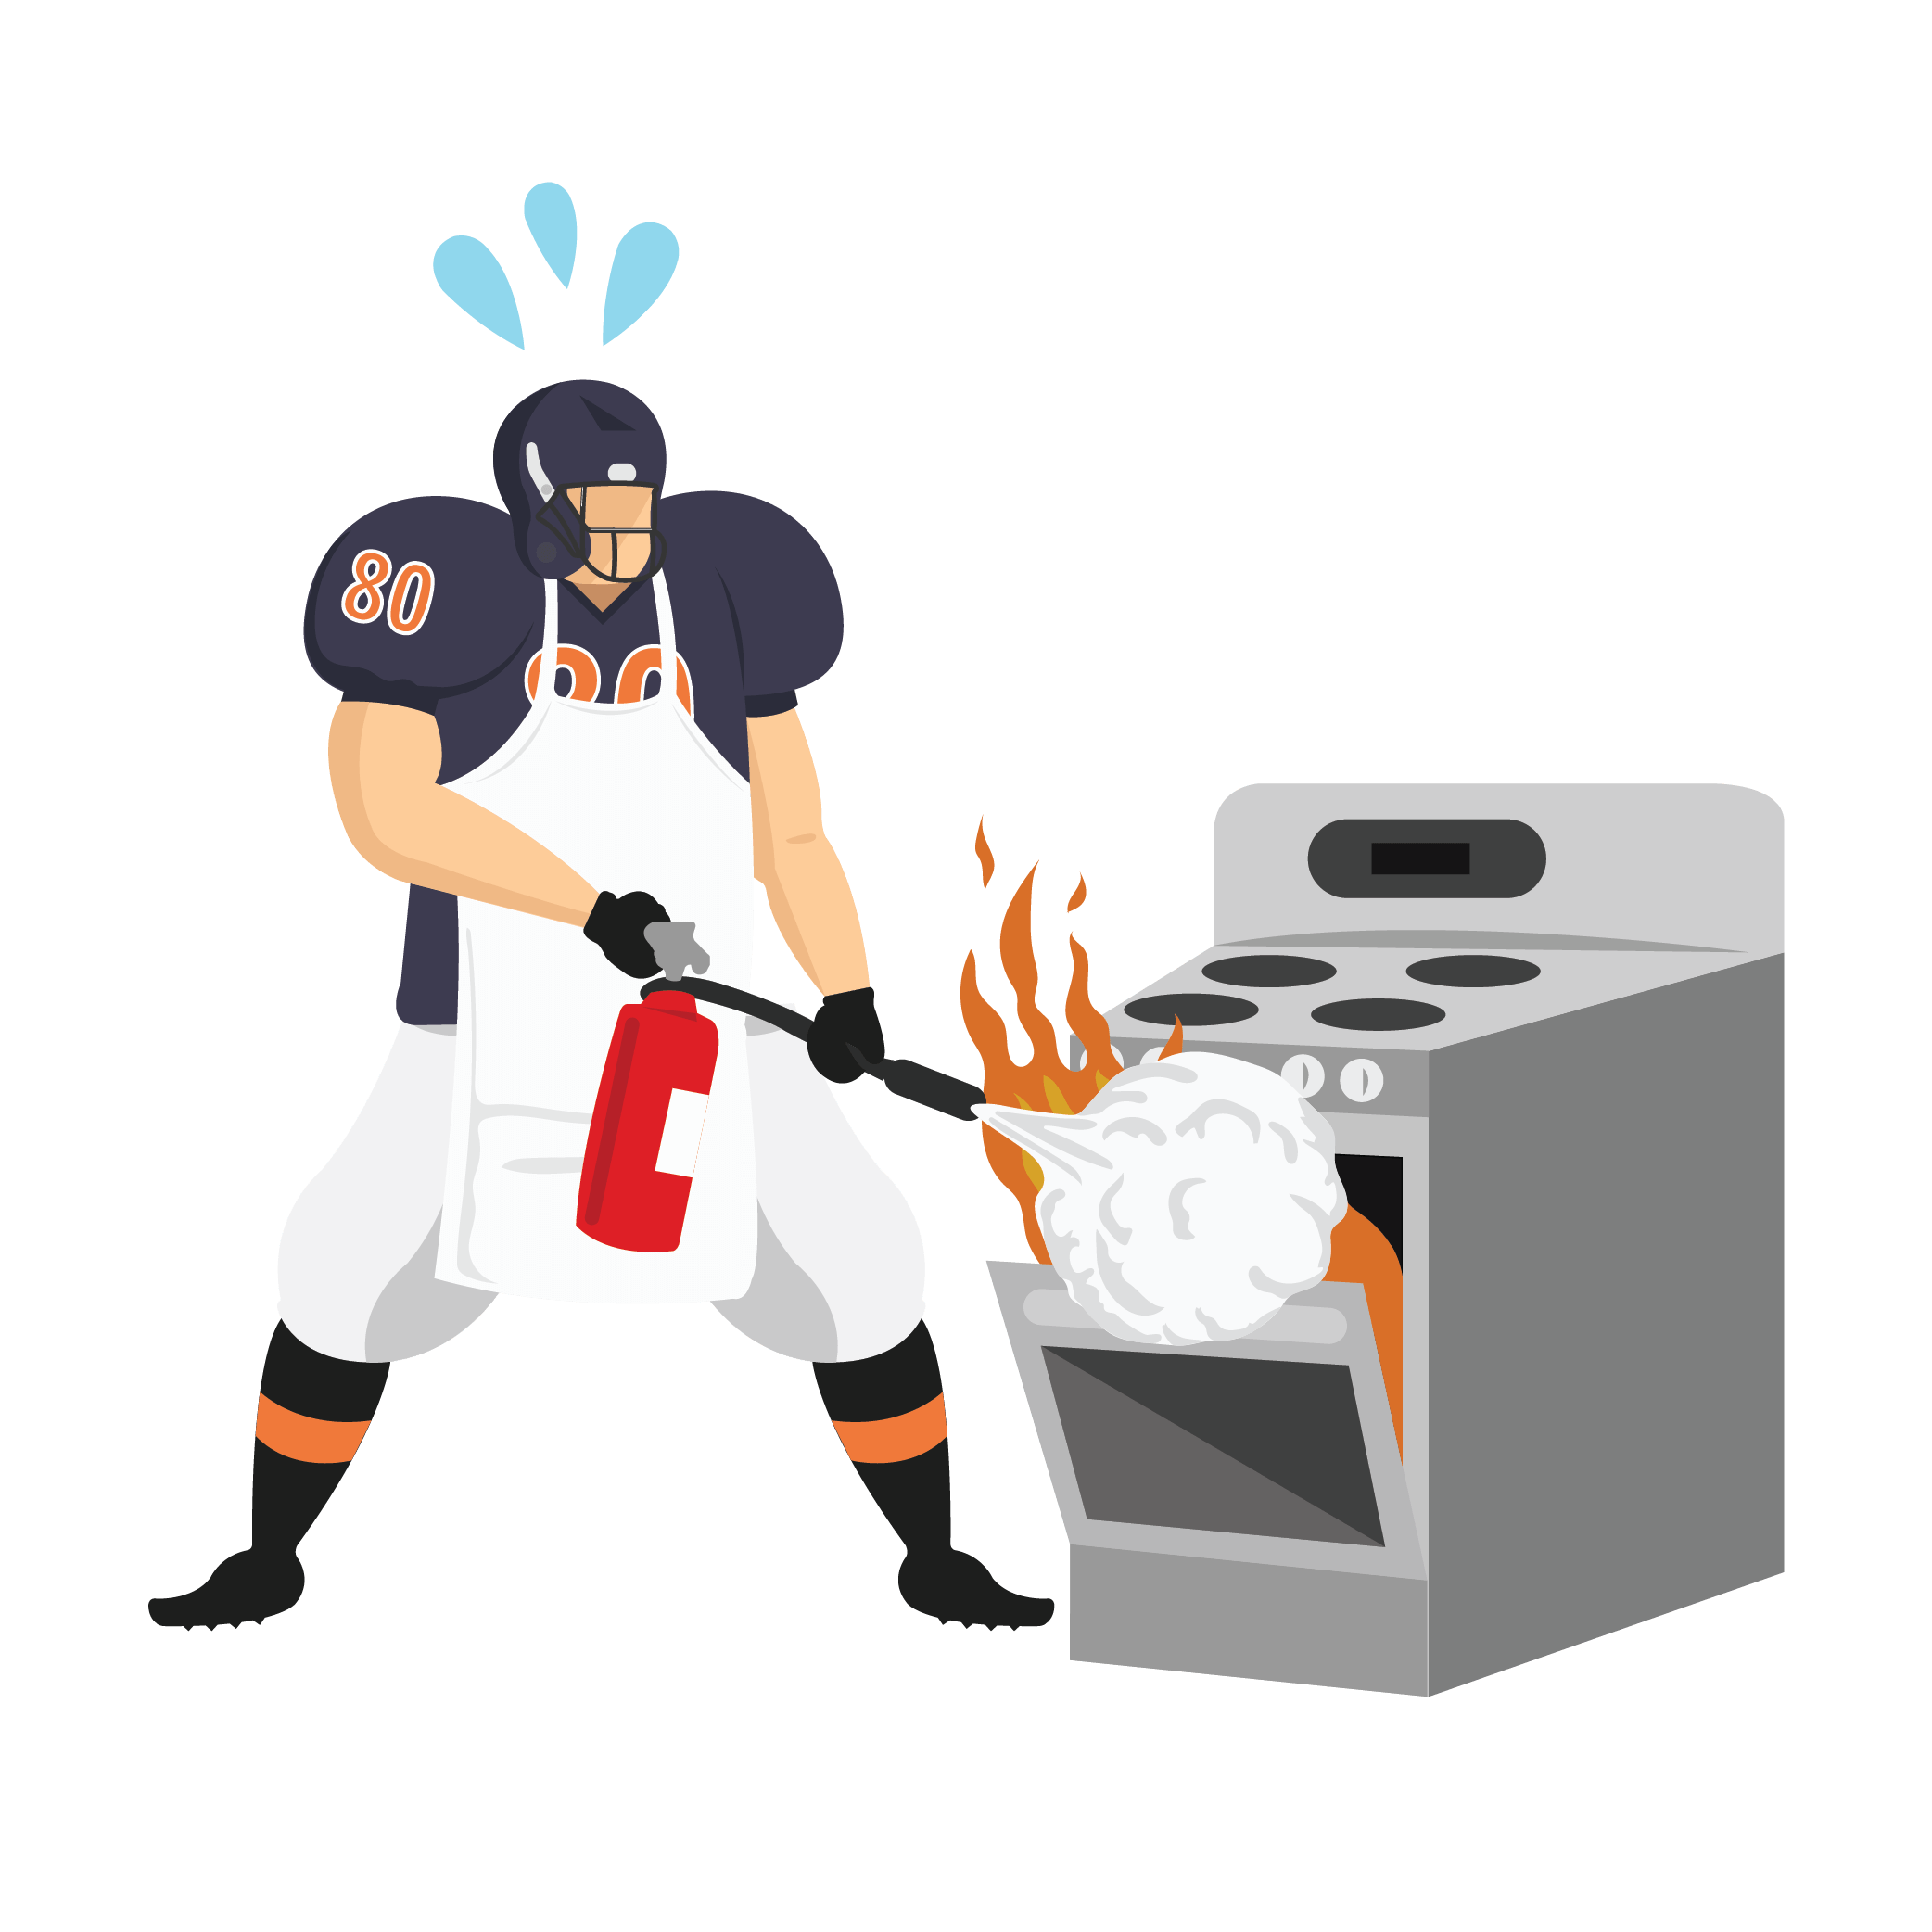 Animated football player using fire extinguisher to put out oven fire